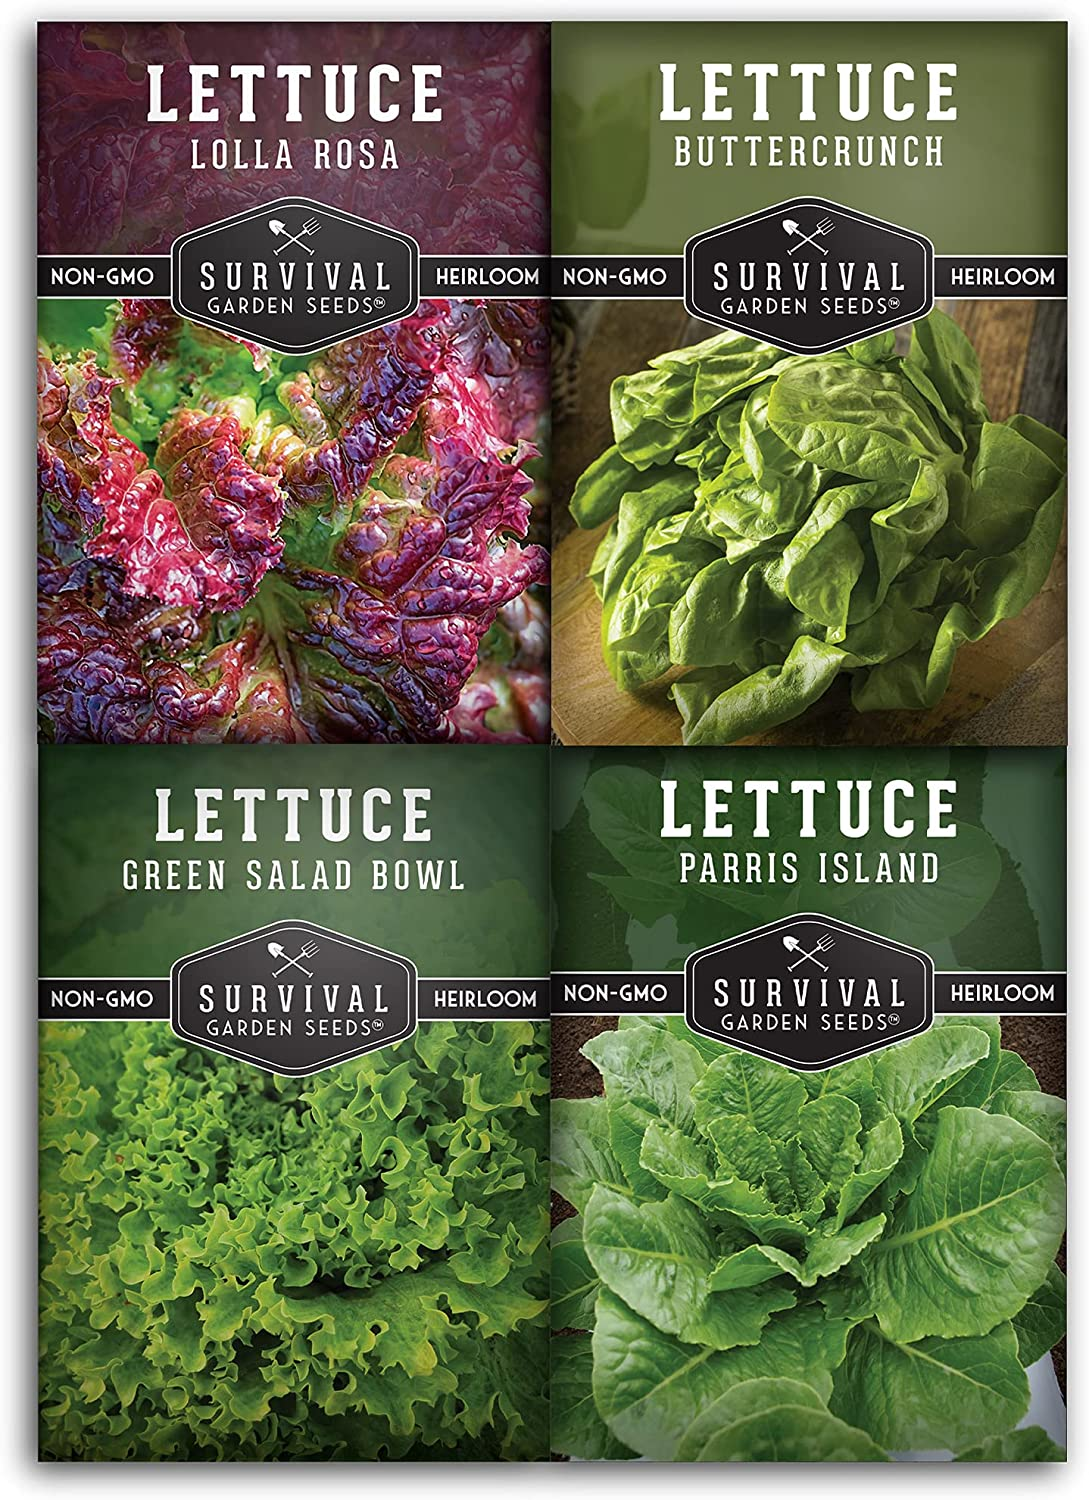 Survival Garden Seeds Lettuce Collection Seed Vault -Buttercrunch, Green Salad Bowl, Lolla Rosa, Parris Island, Iceberg Non-GMO Heirloom Seeds for Planting & Growing